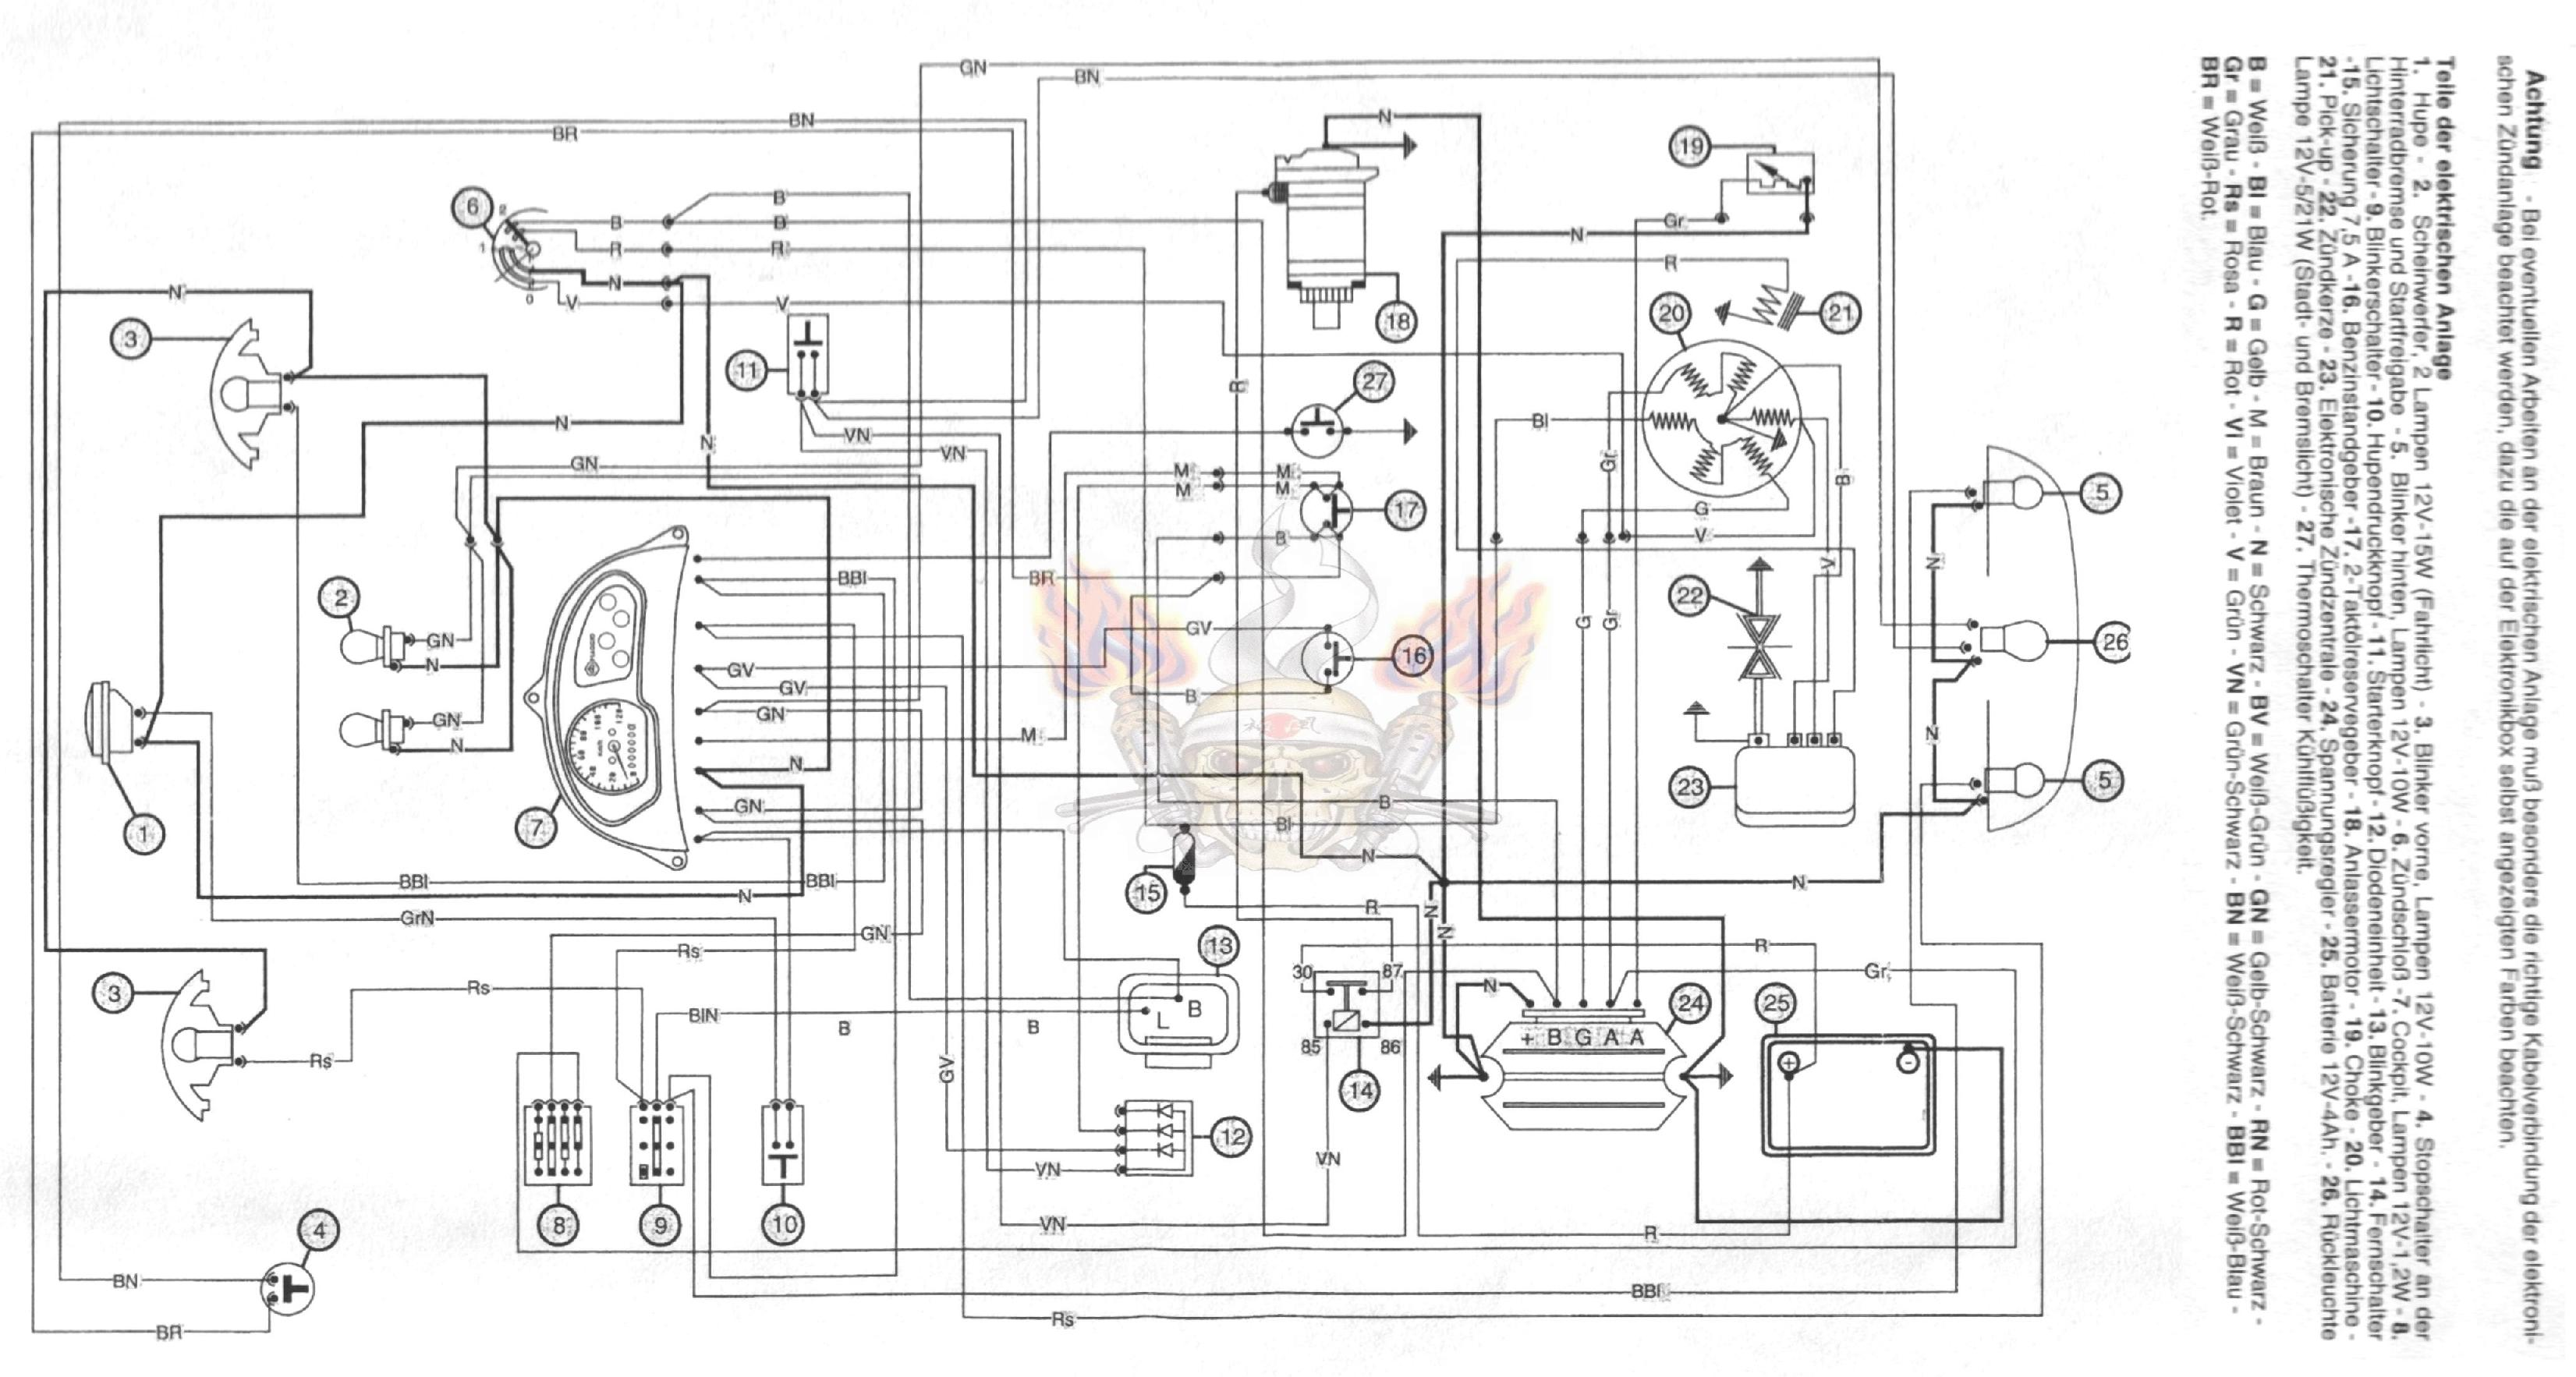 Kymco Wiring Diagram. Wiring. Wiring Diagrams Instructions